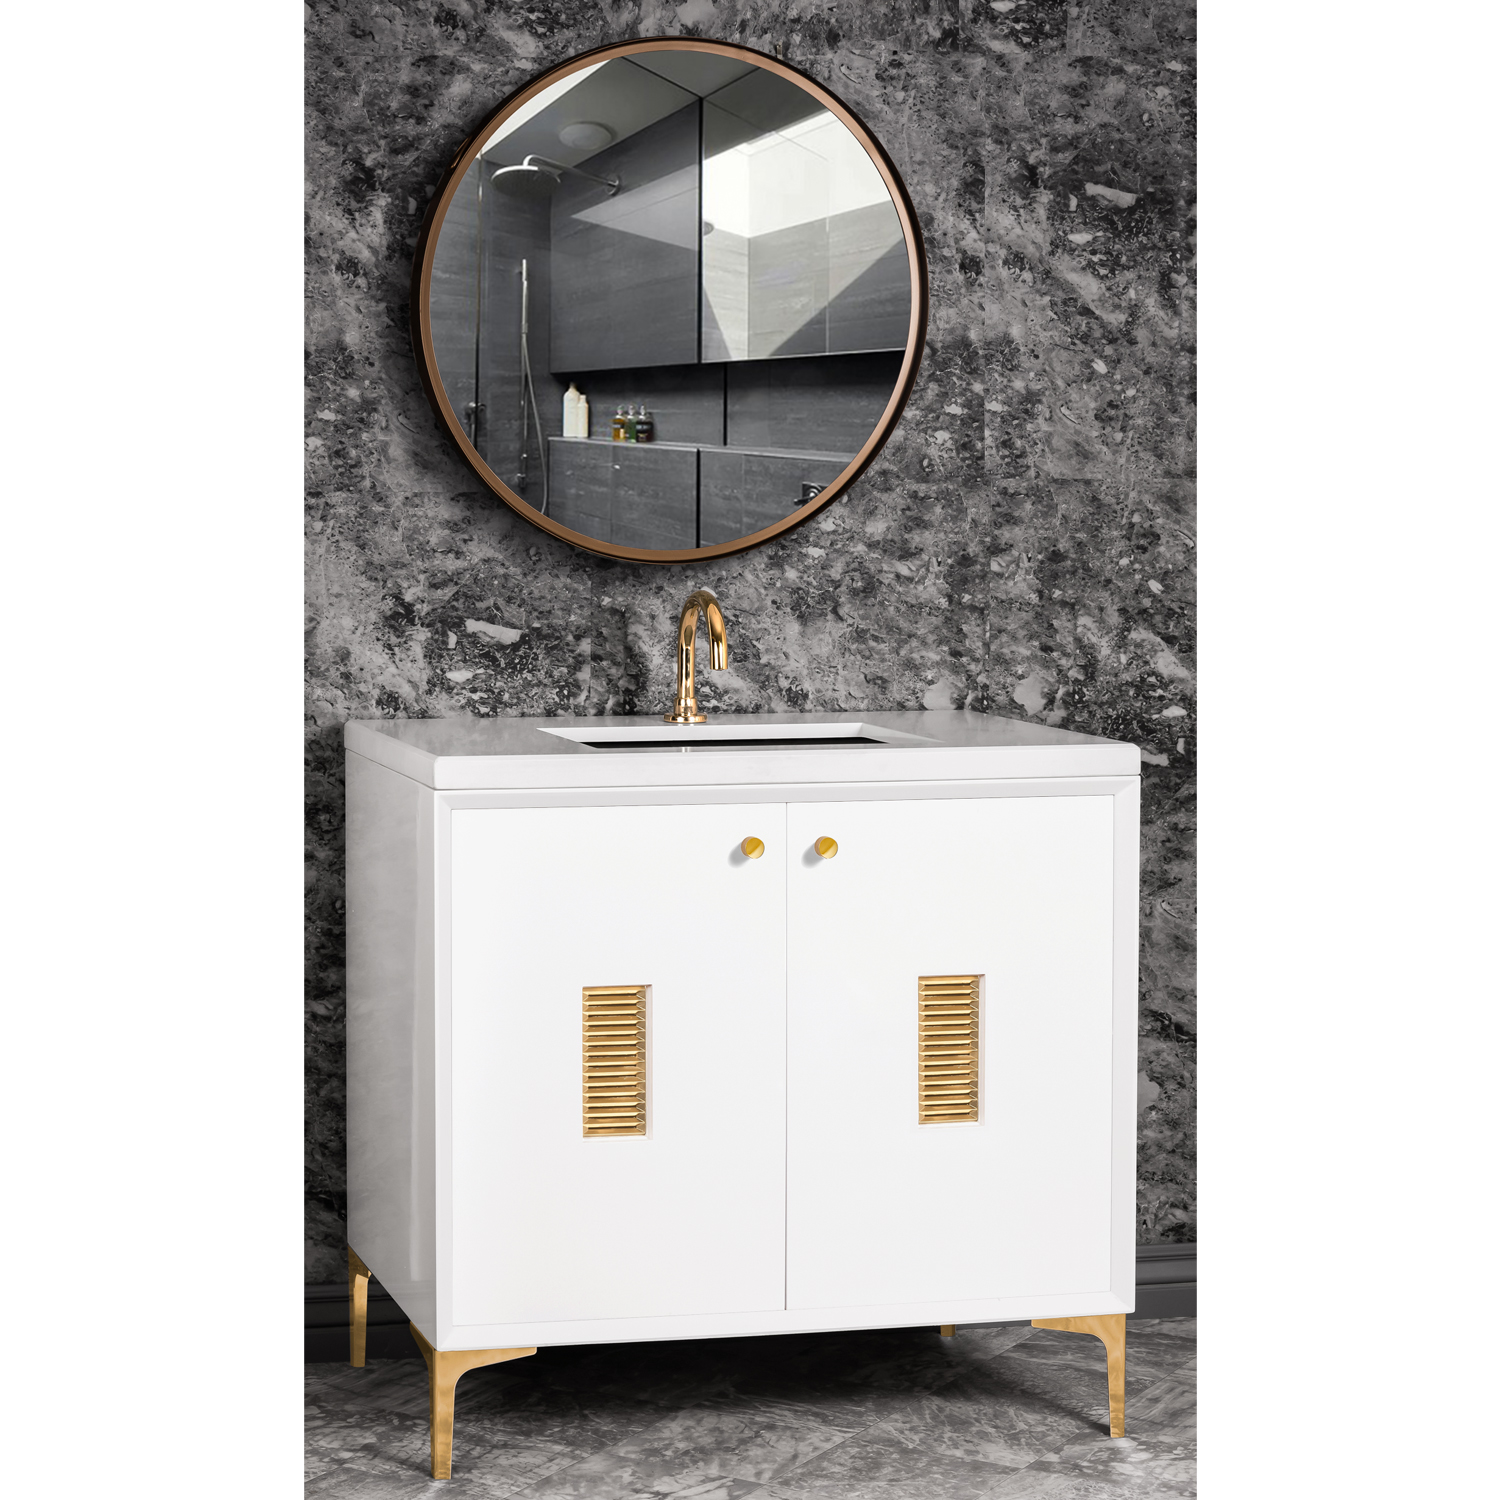 """VAN36W-012   36"""" White Frame with Louver - Shown with PB (Polished Brass)"""